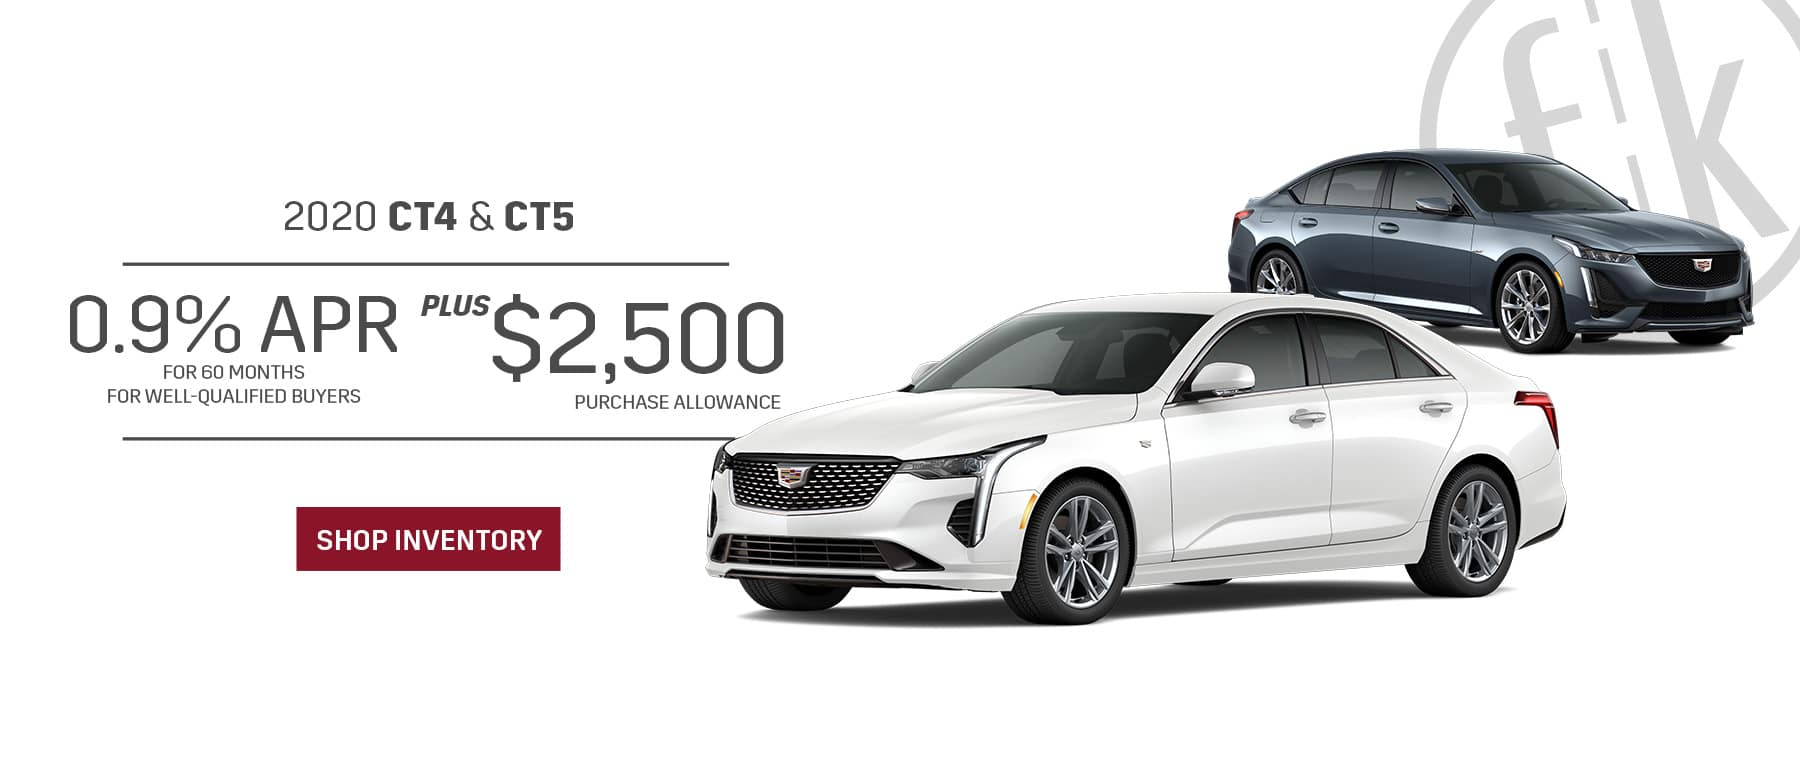 0.9% for 60 mos PLUS $2,500 Purchase Allowance 2020 CT4 & CT5